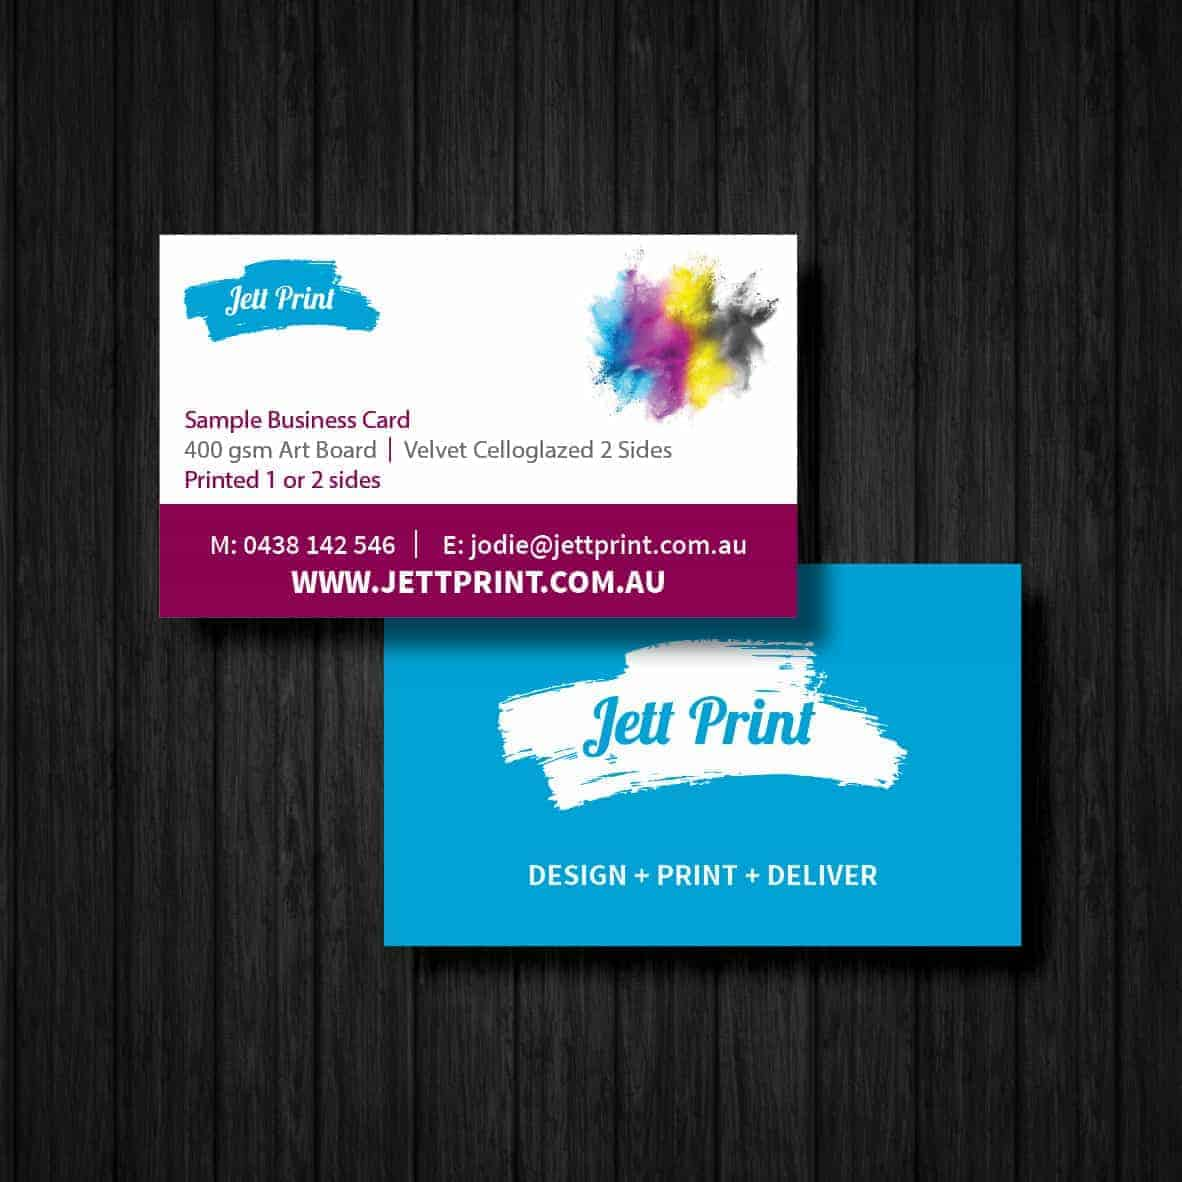 jett-print-velvet-celloglazed-business-cards